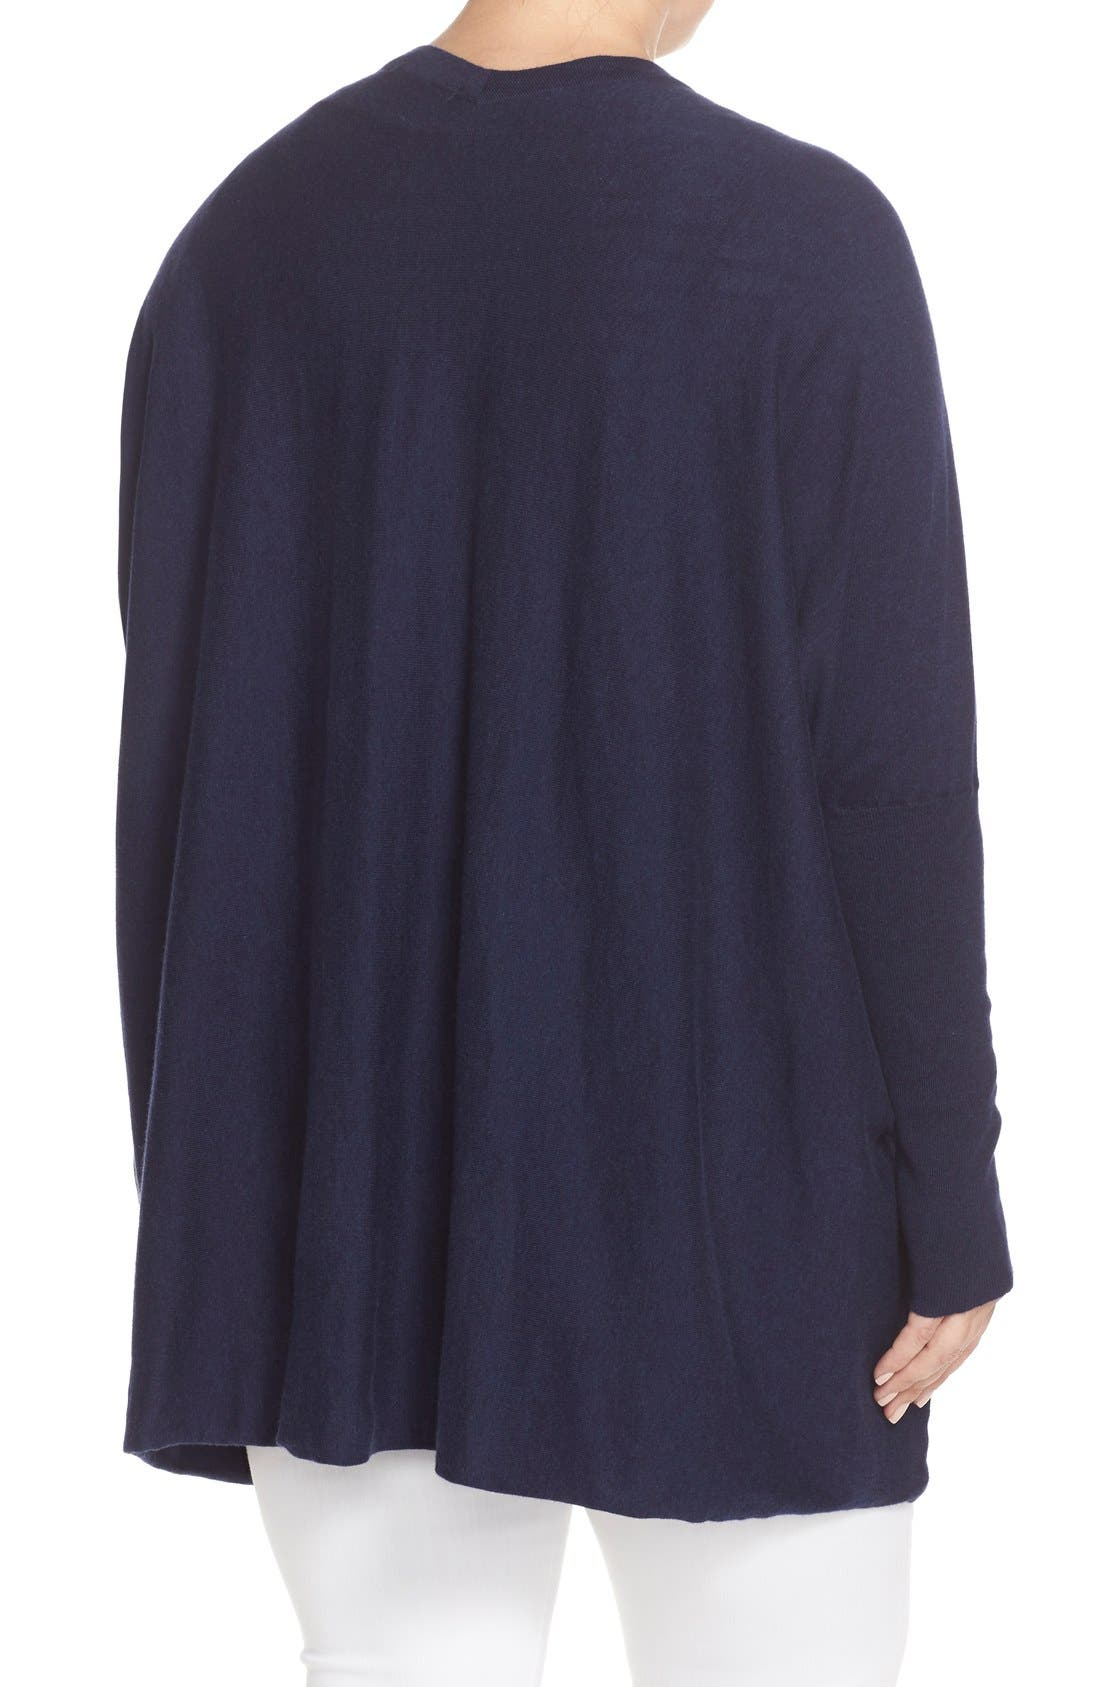 'Darma' Cotton & Cashmere Knit Cardigan,                             Alternate thumbnail 2, color,                             Melange Navy